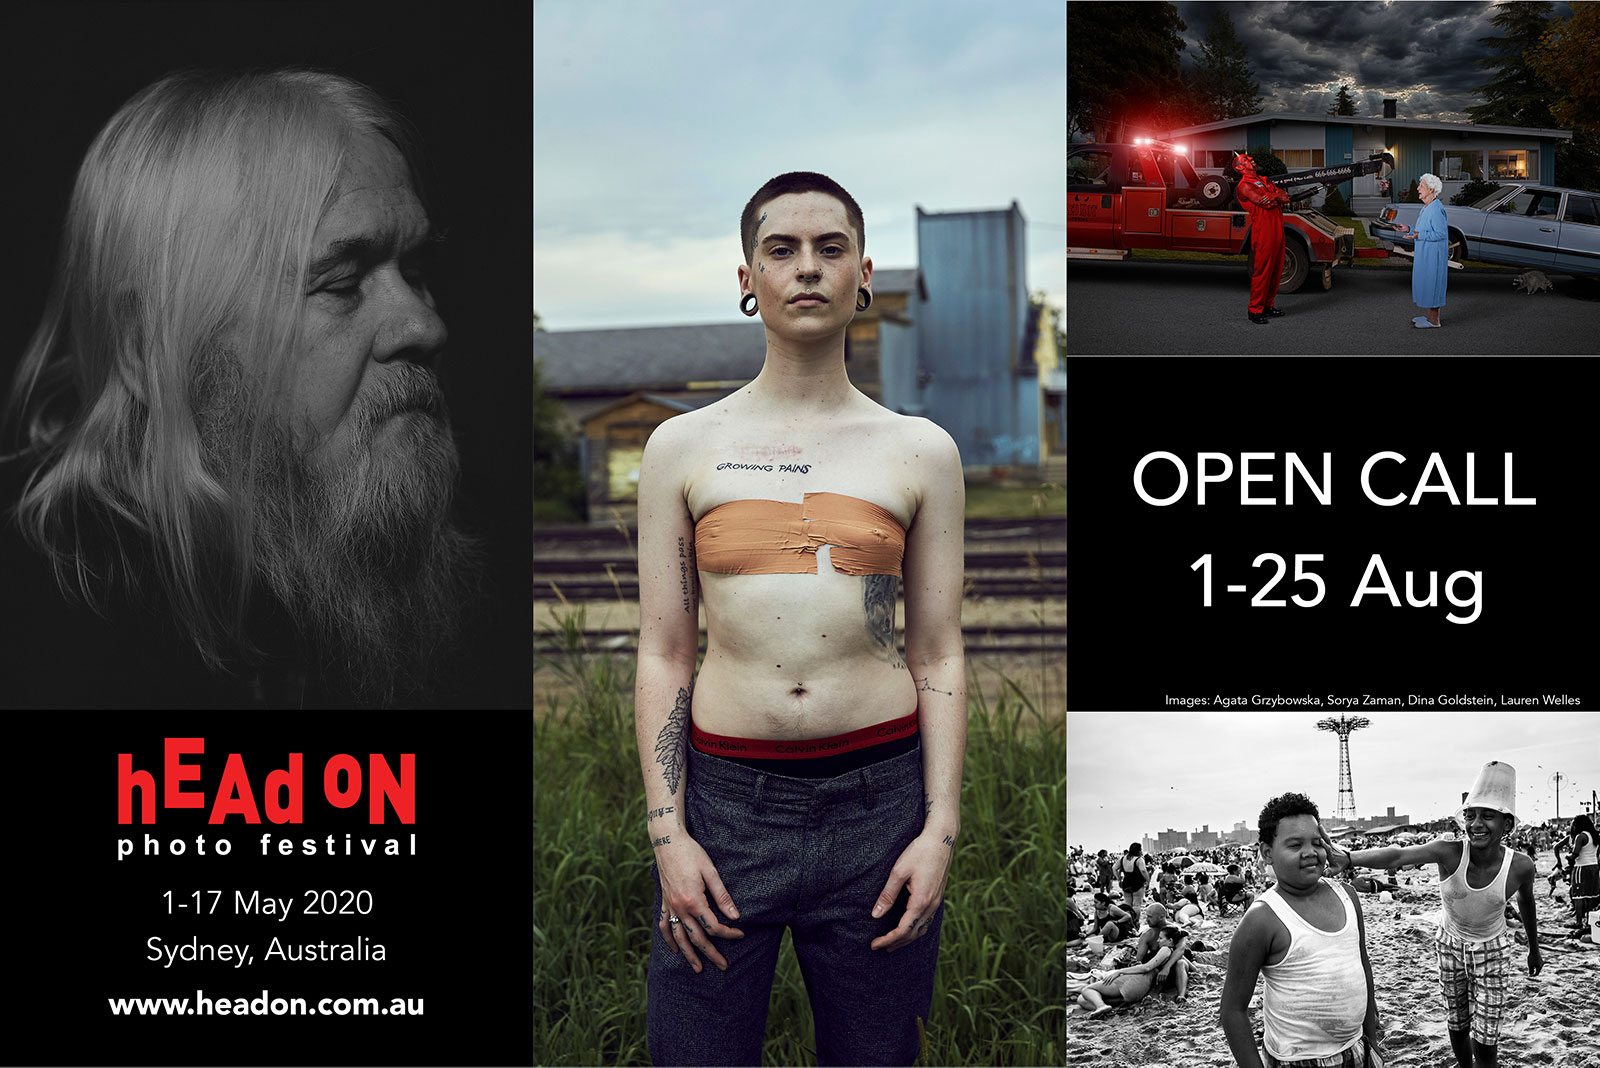 Exhibition submissions open in 1 week | Head On Photo Festival